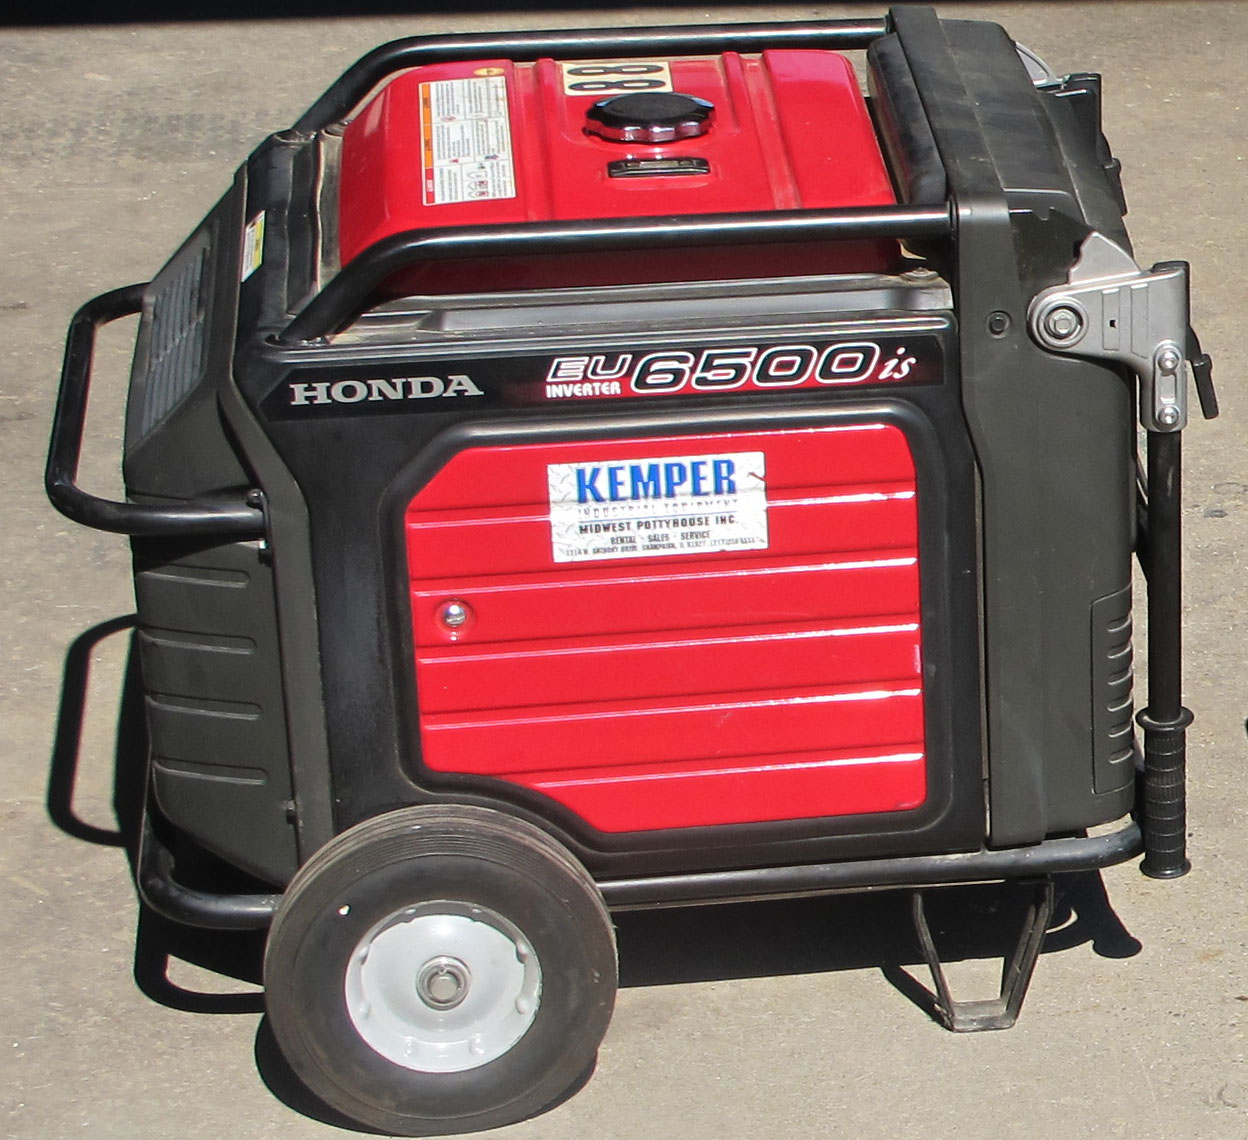 honda power generator kempercom